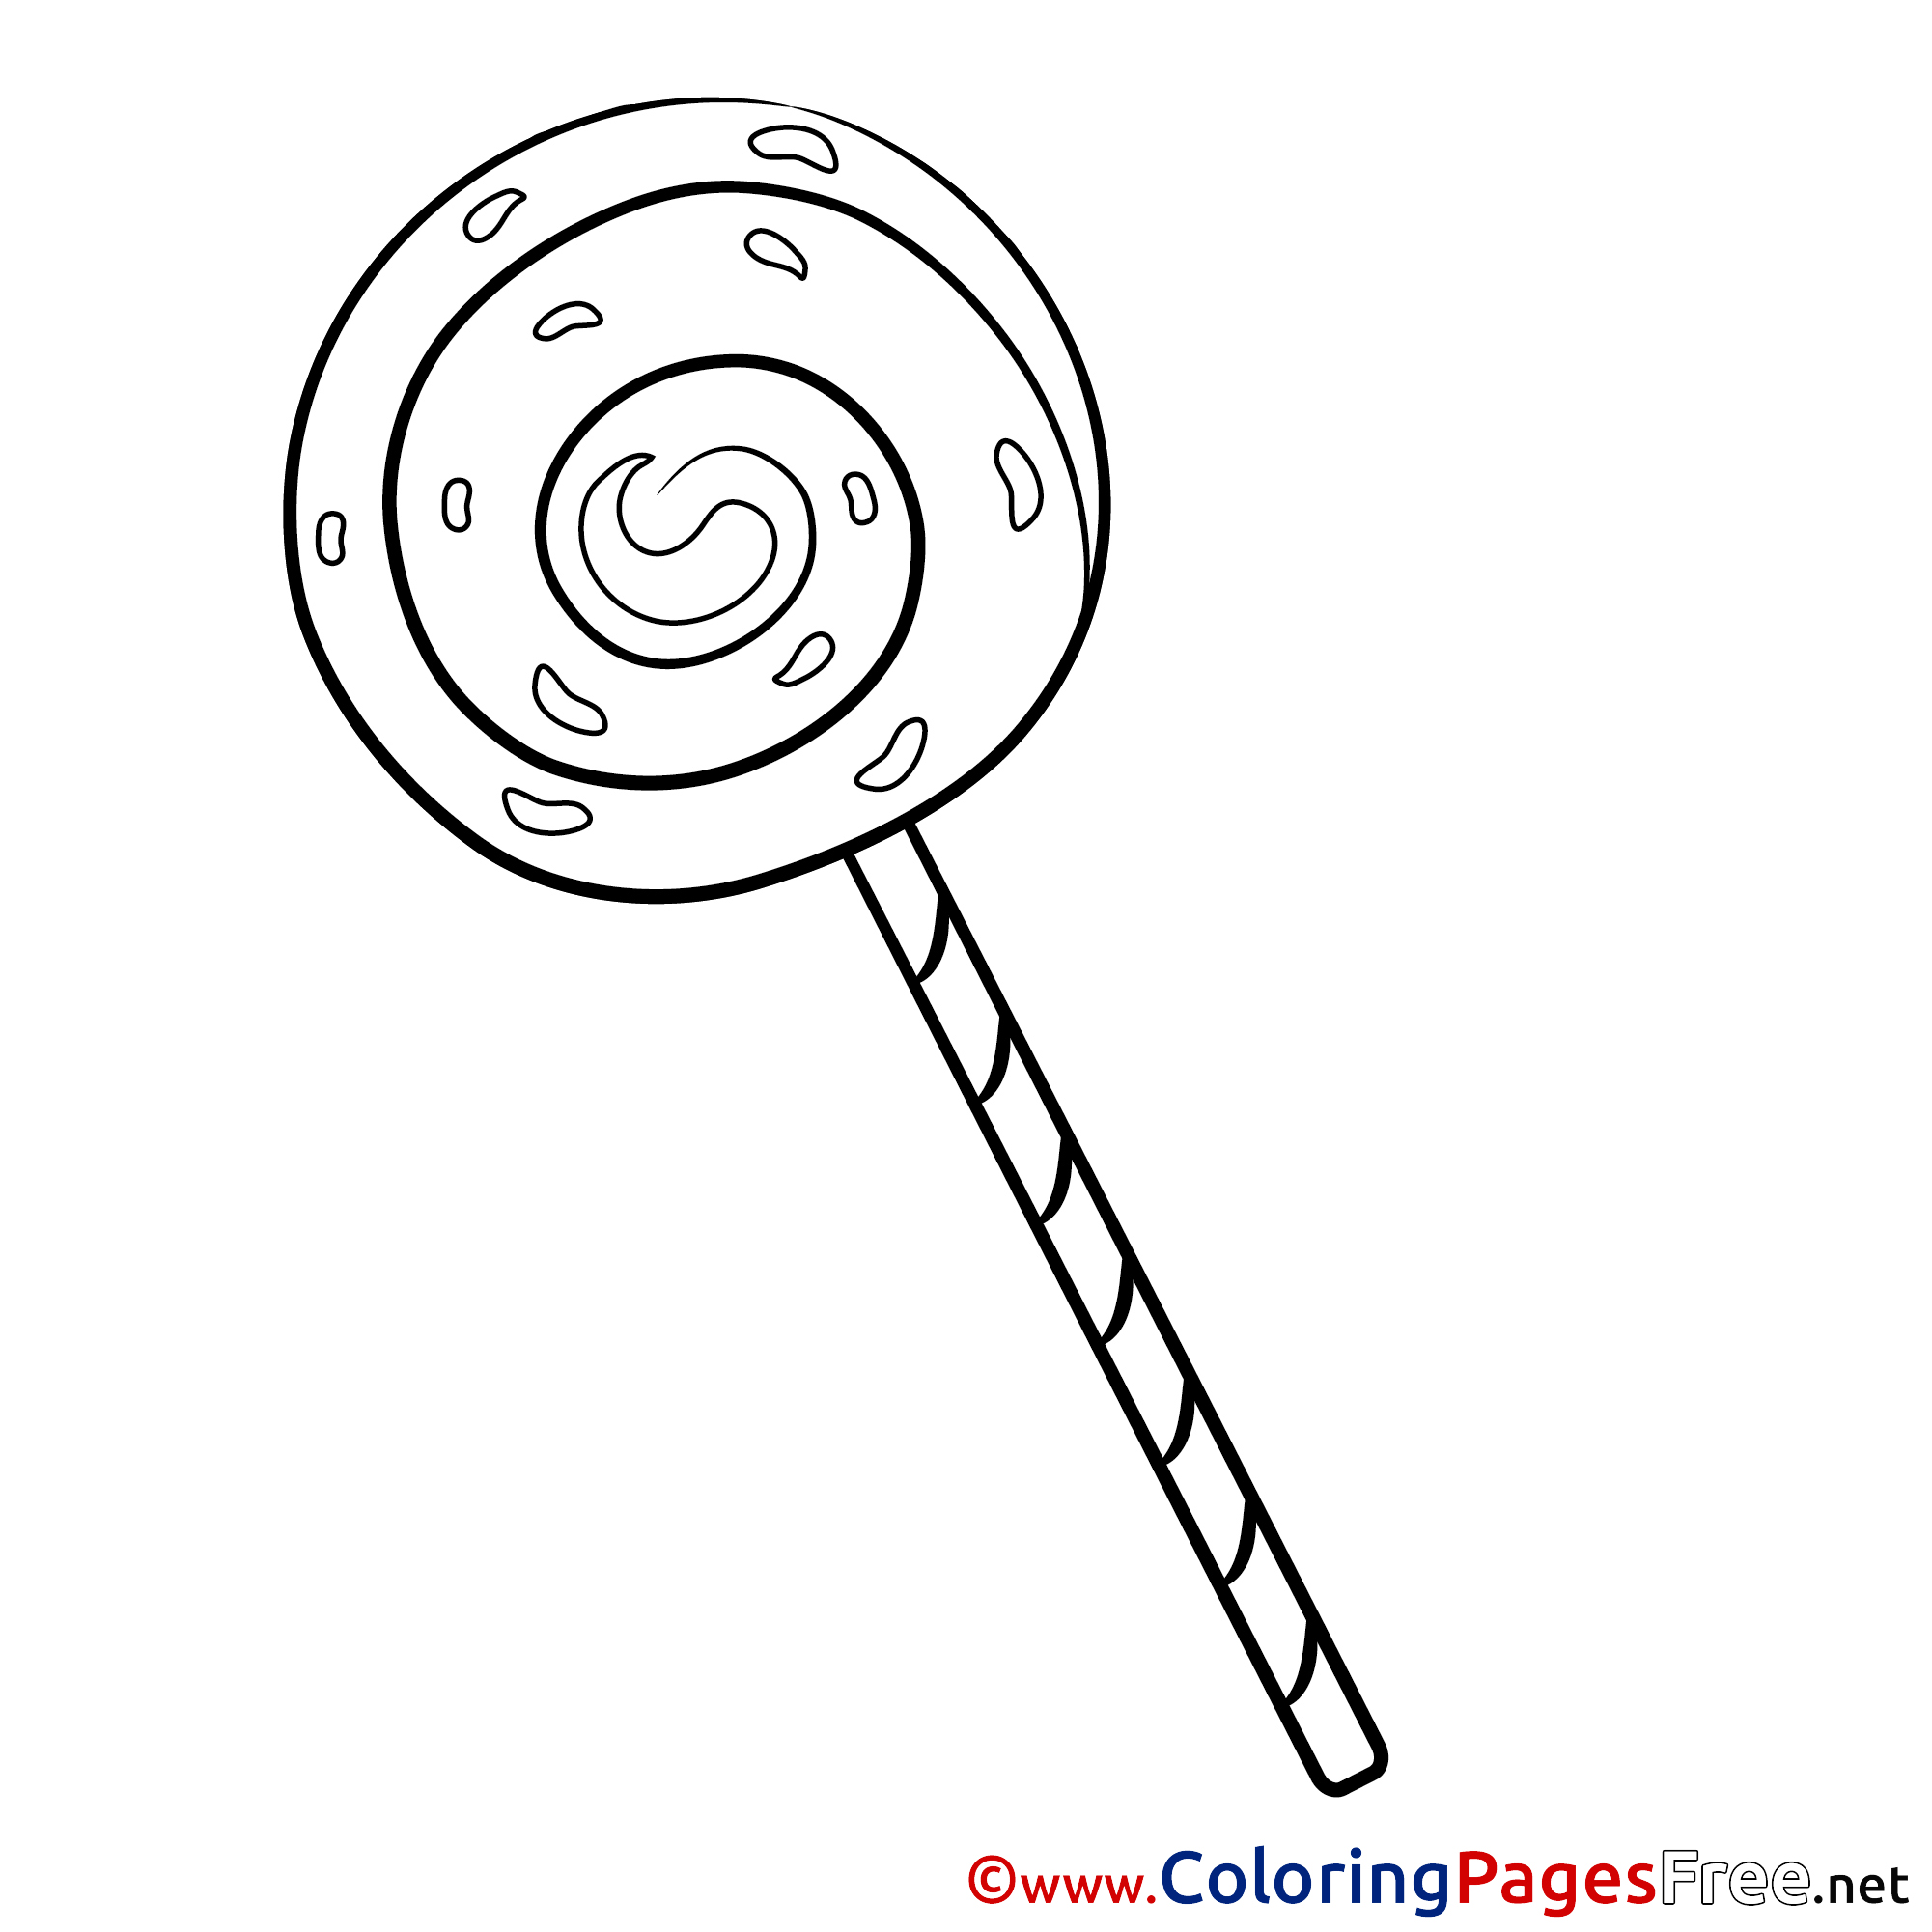 free lollipop coloring pages | Lollipop for Kids printable Colouring Page